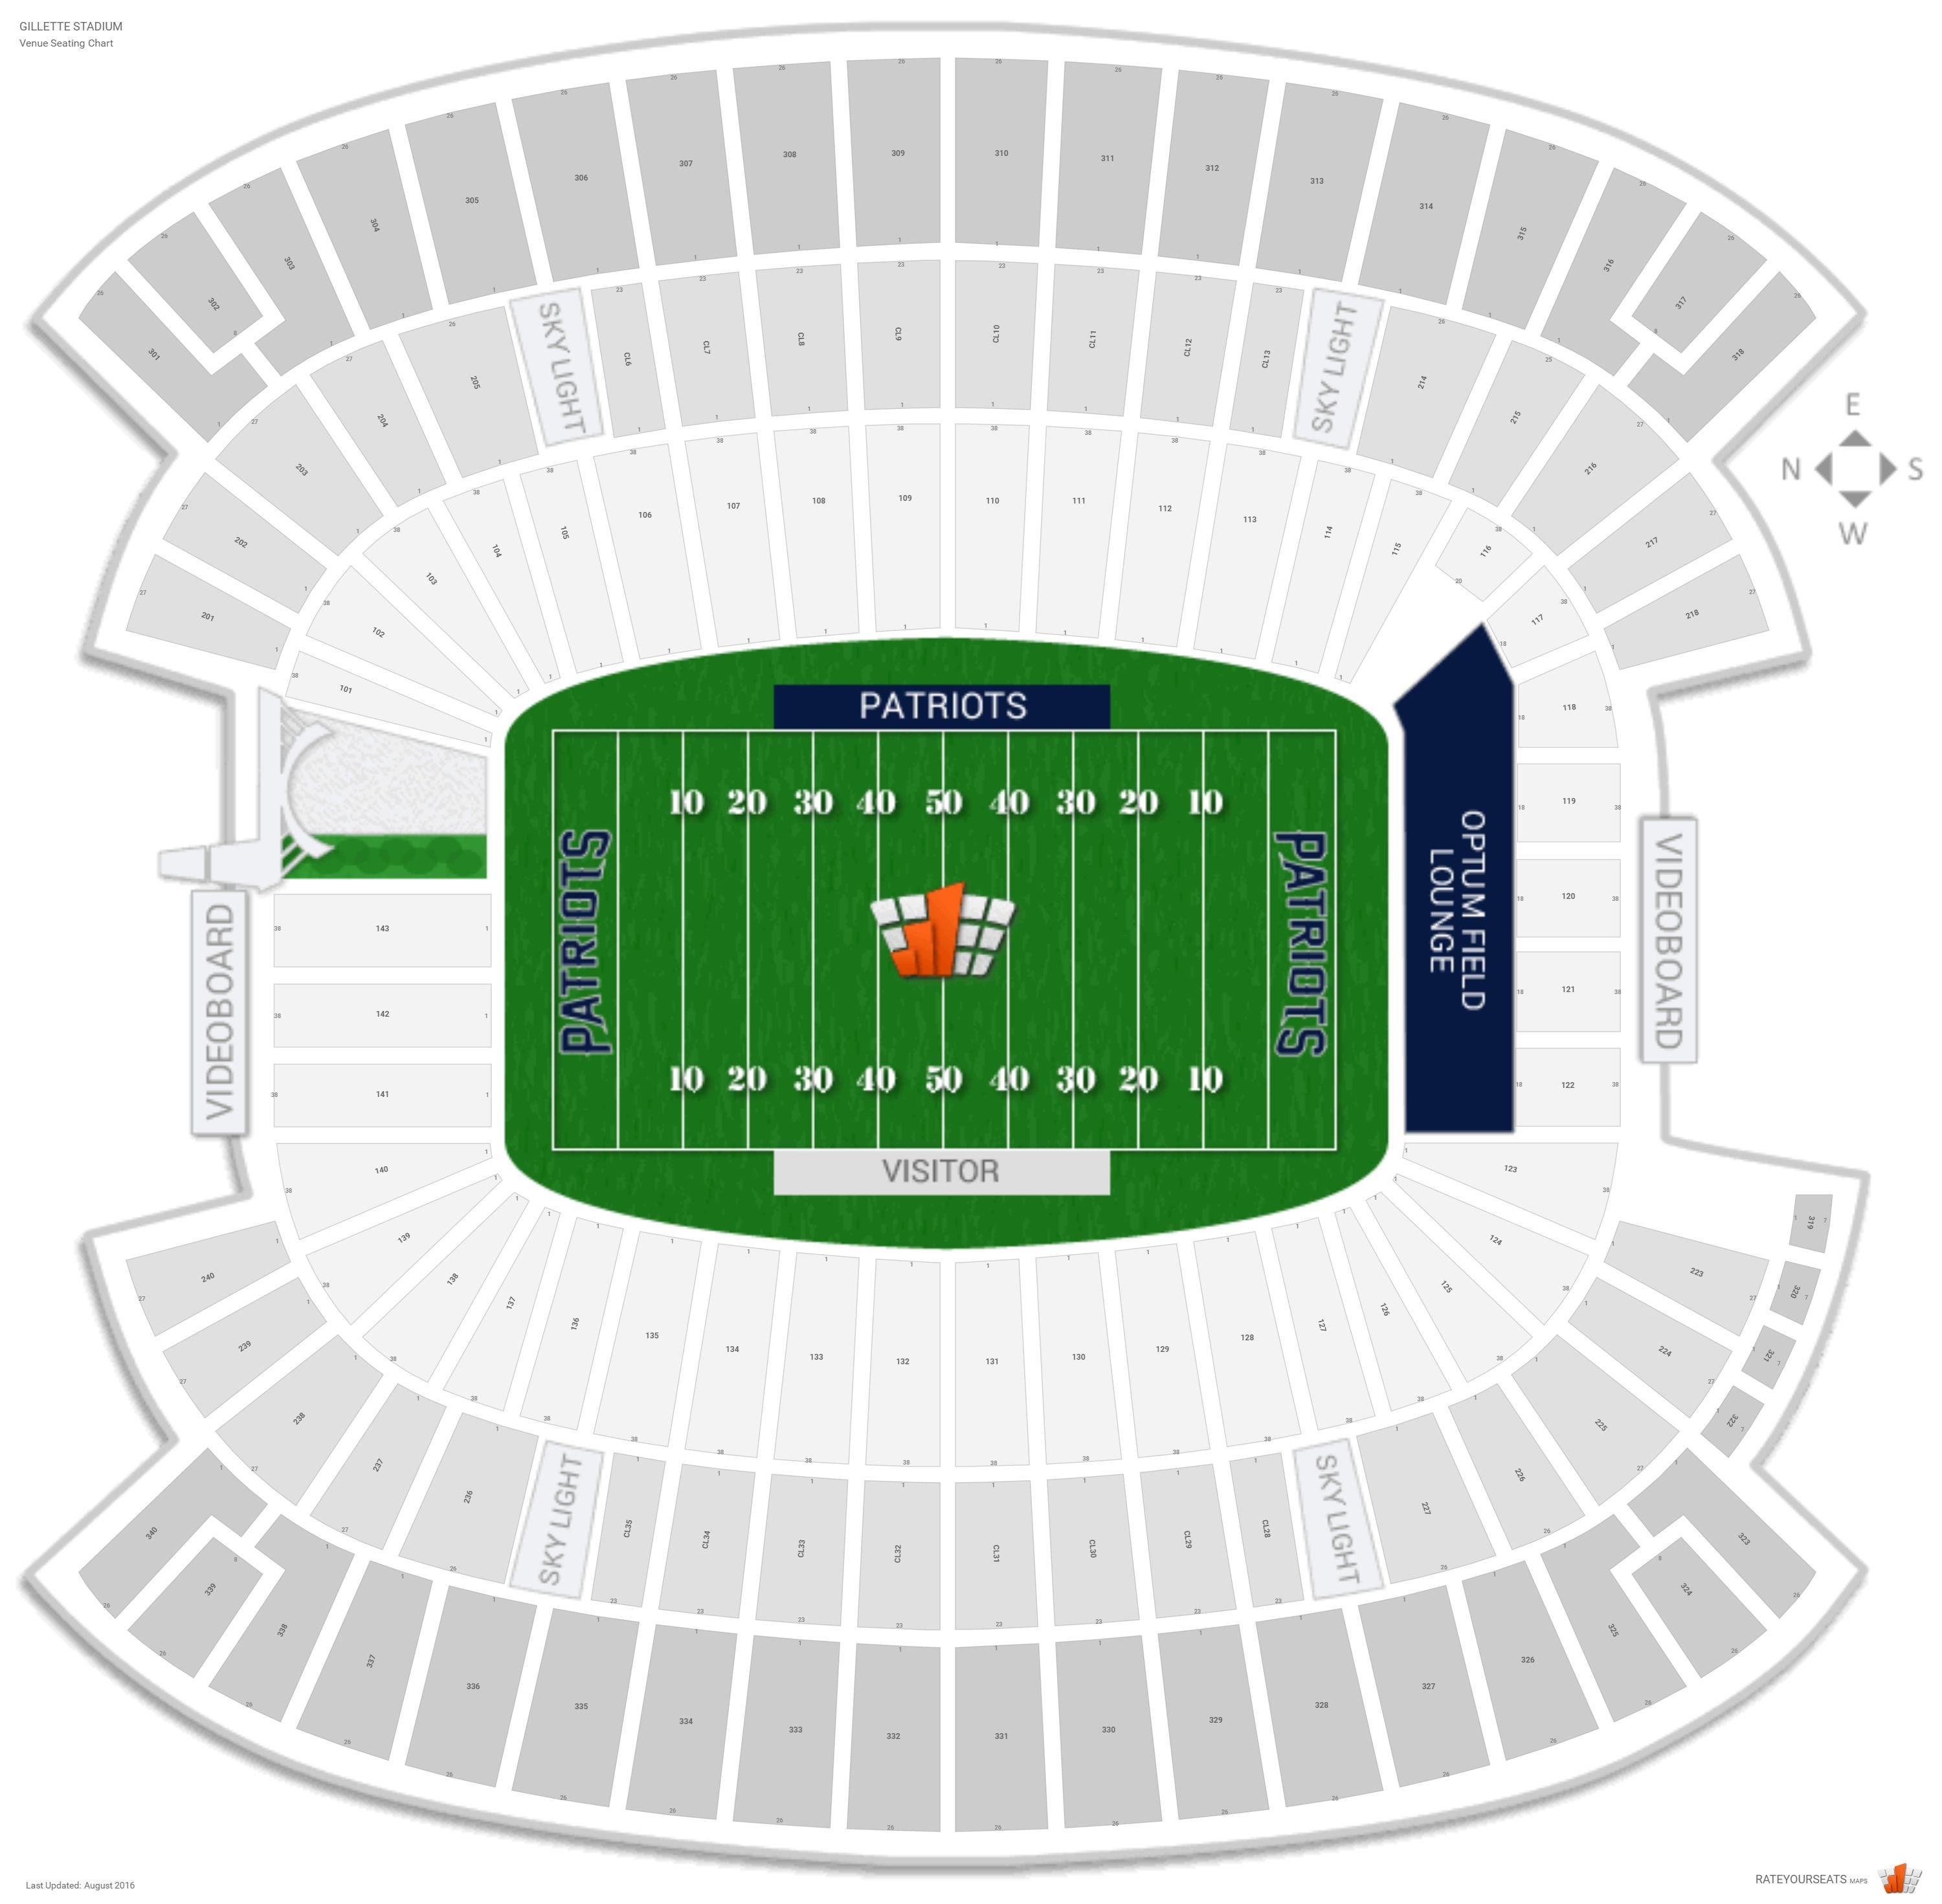 gillette stadium detailed seating chart. Black Bedroom Furniture Sets. Home Design Ideas